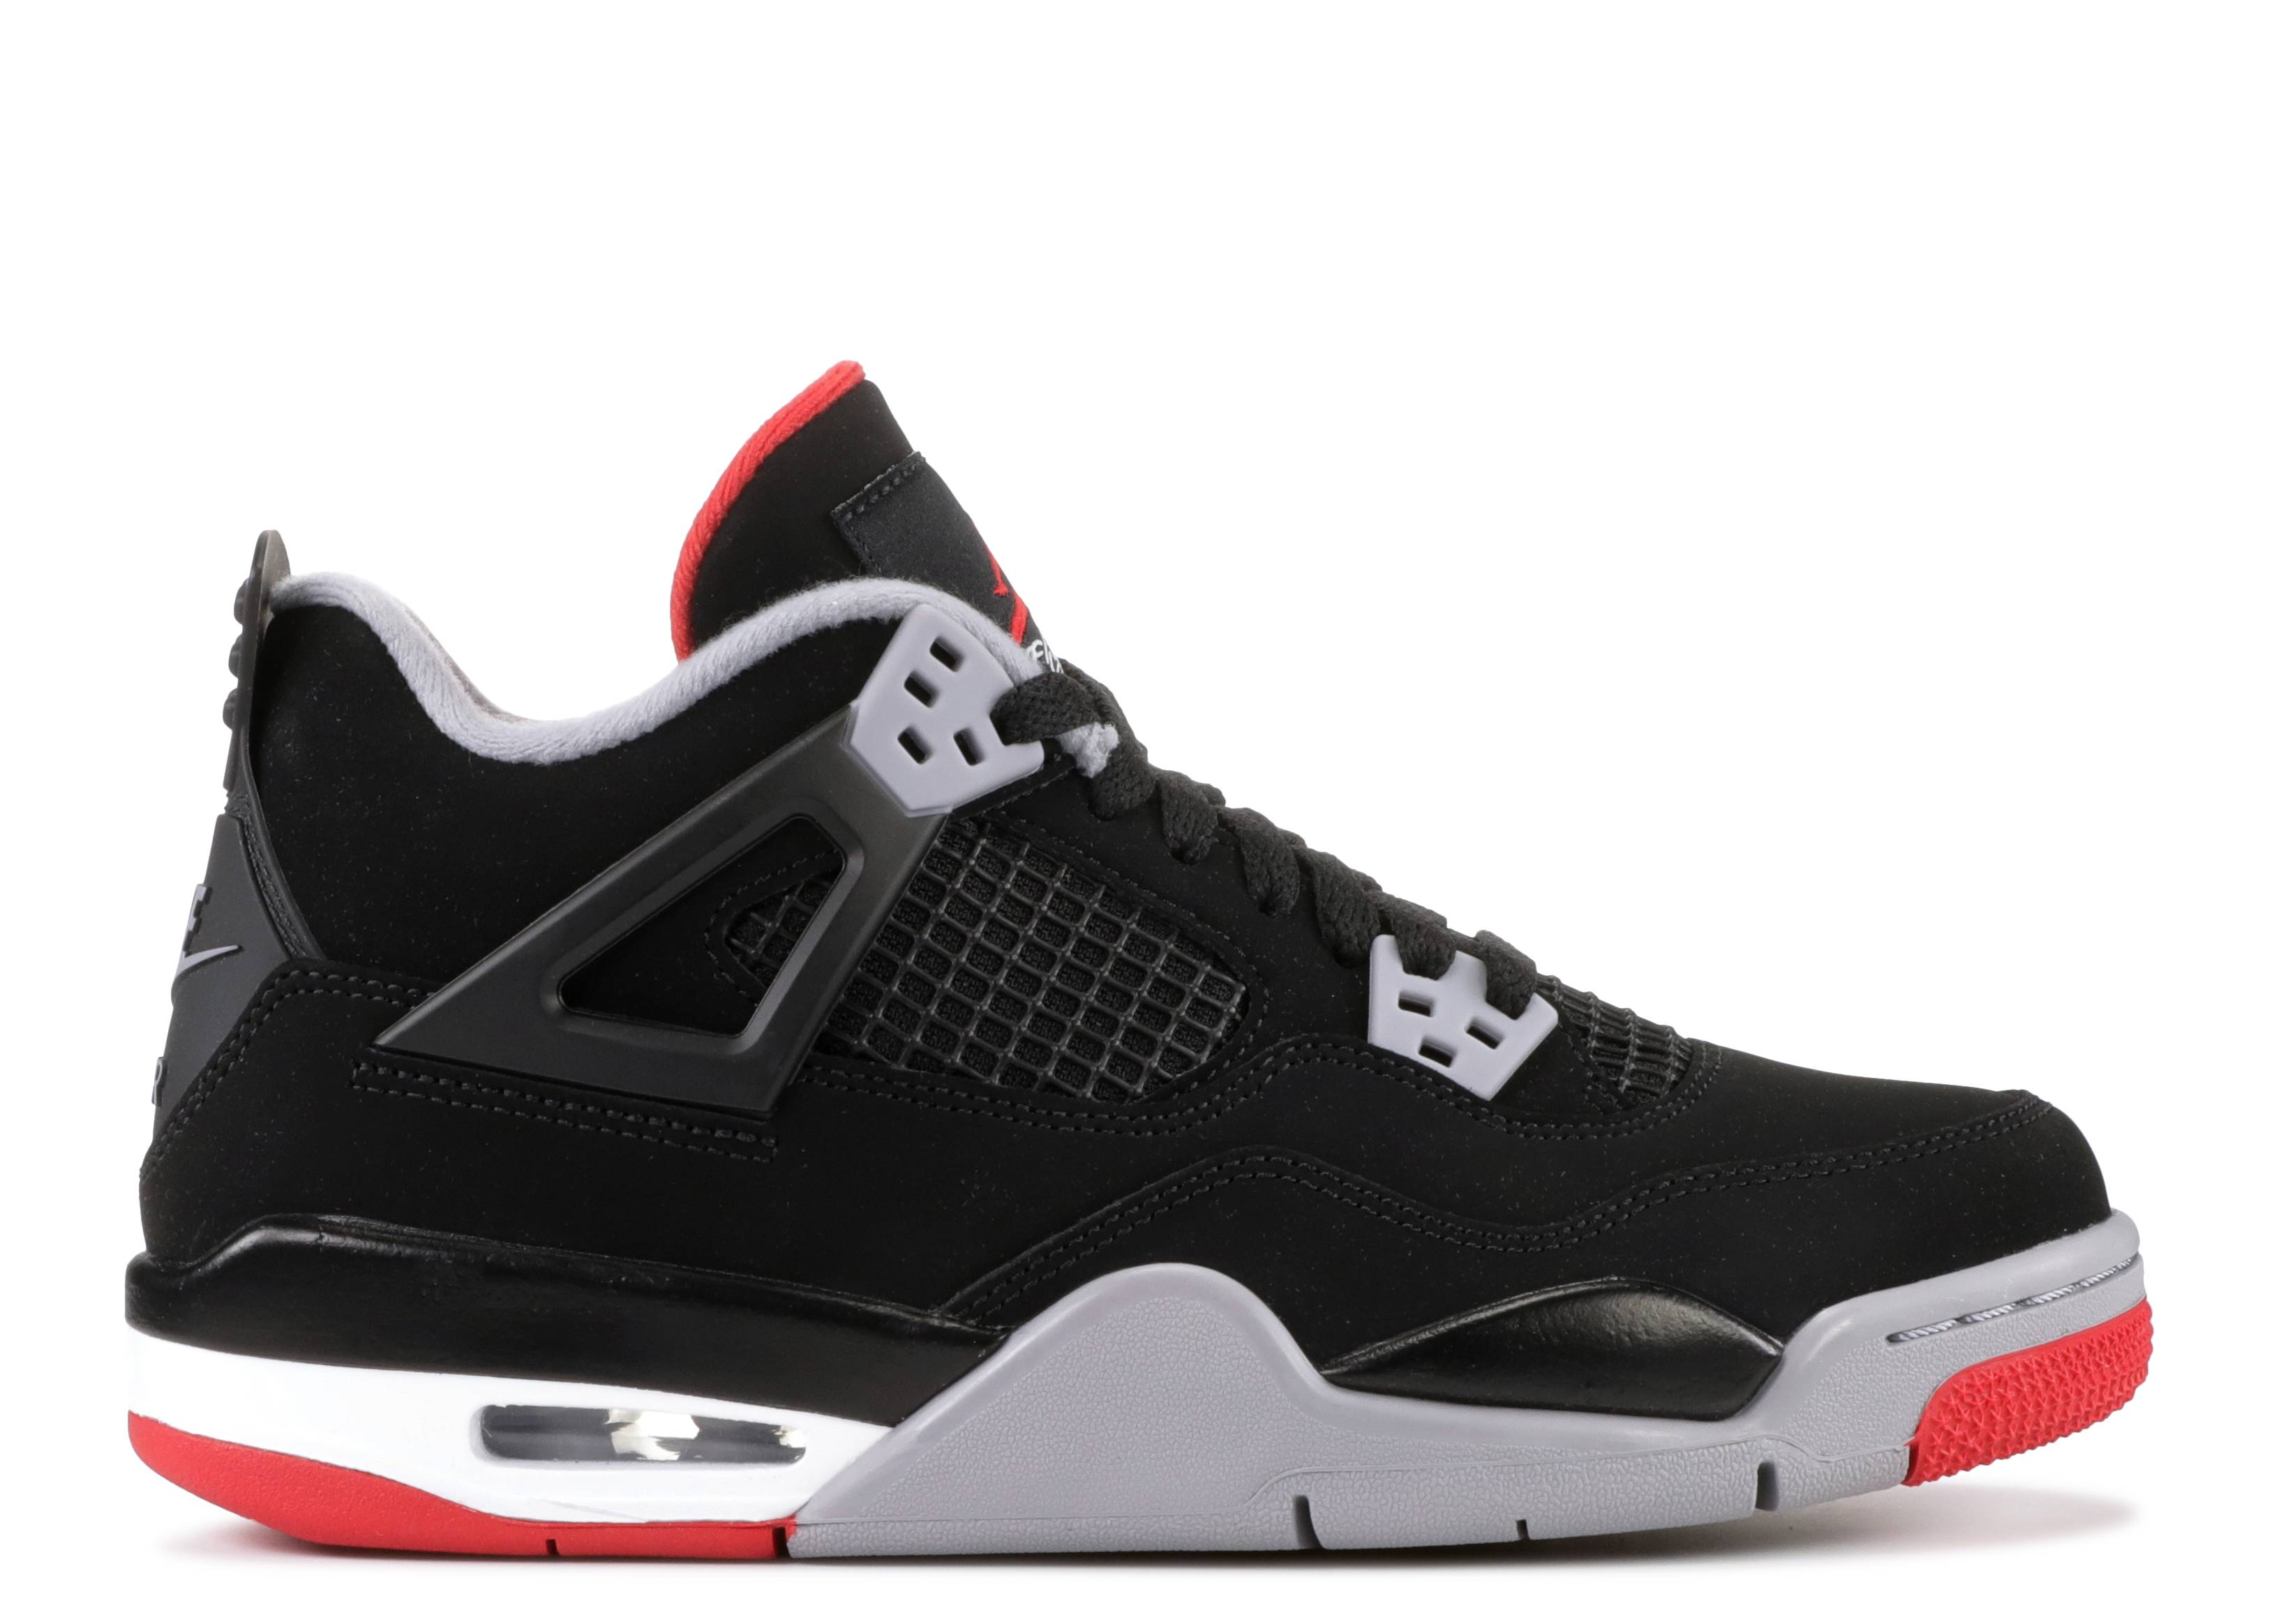 new arrival 2a6d2 2adf1 Air Jordan 4 (IV) Shoes - Nike | Flight Club